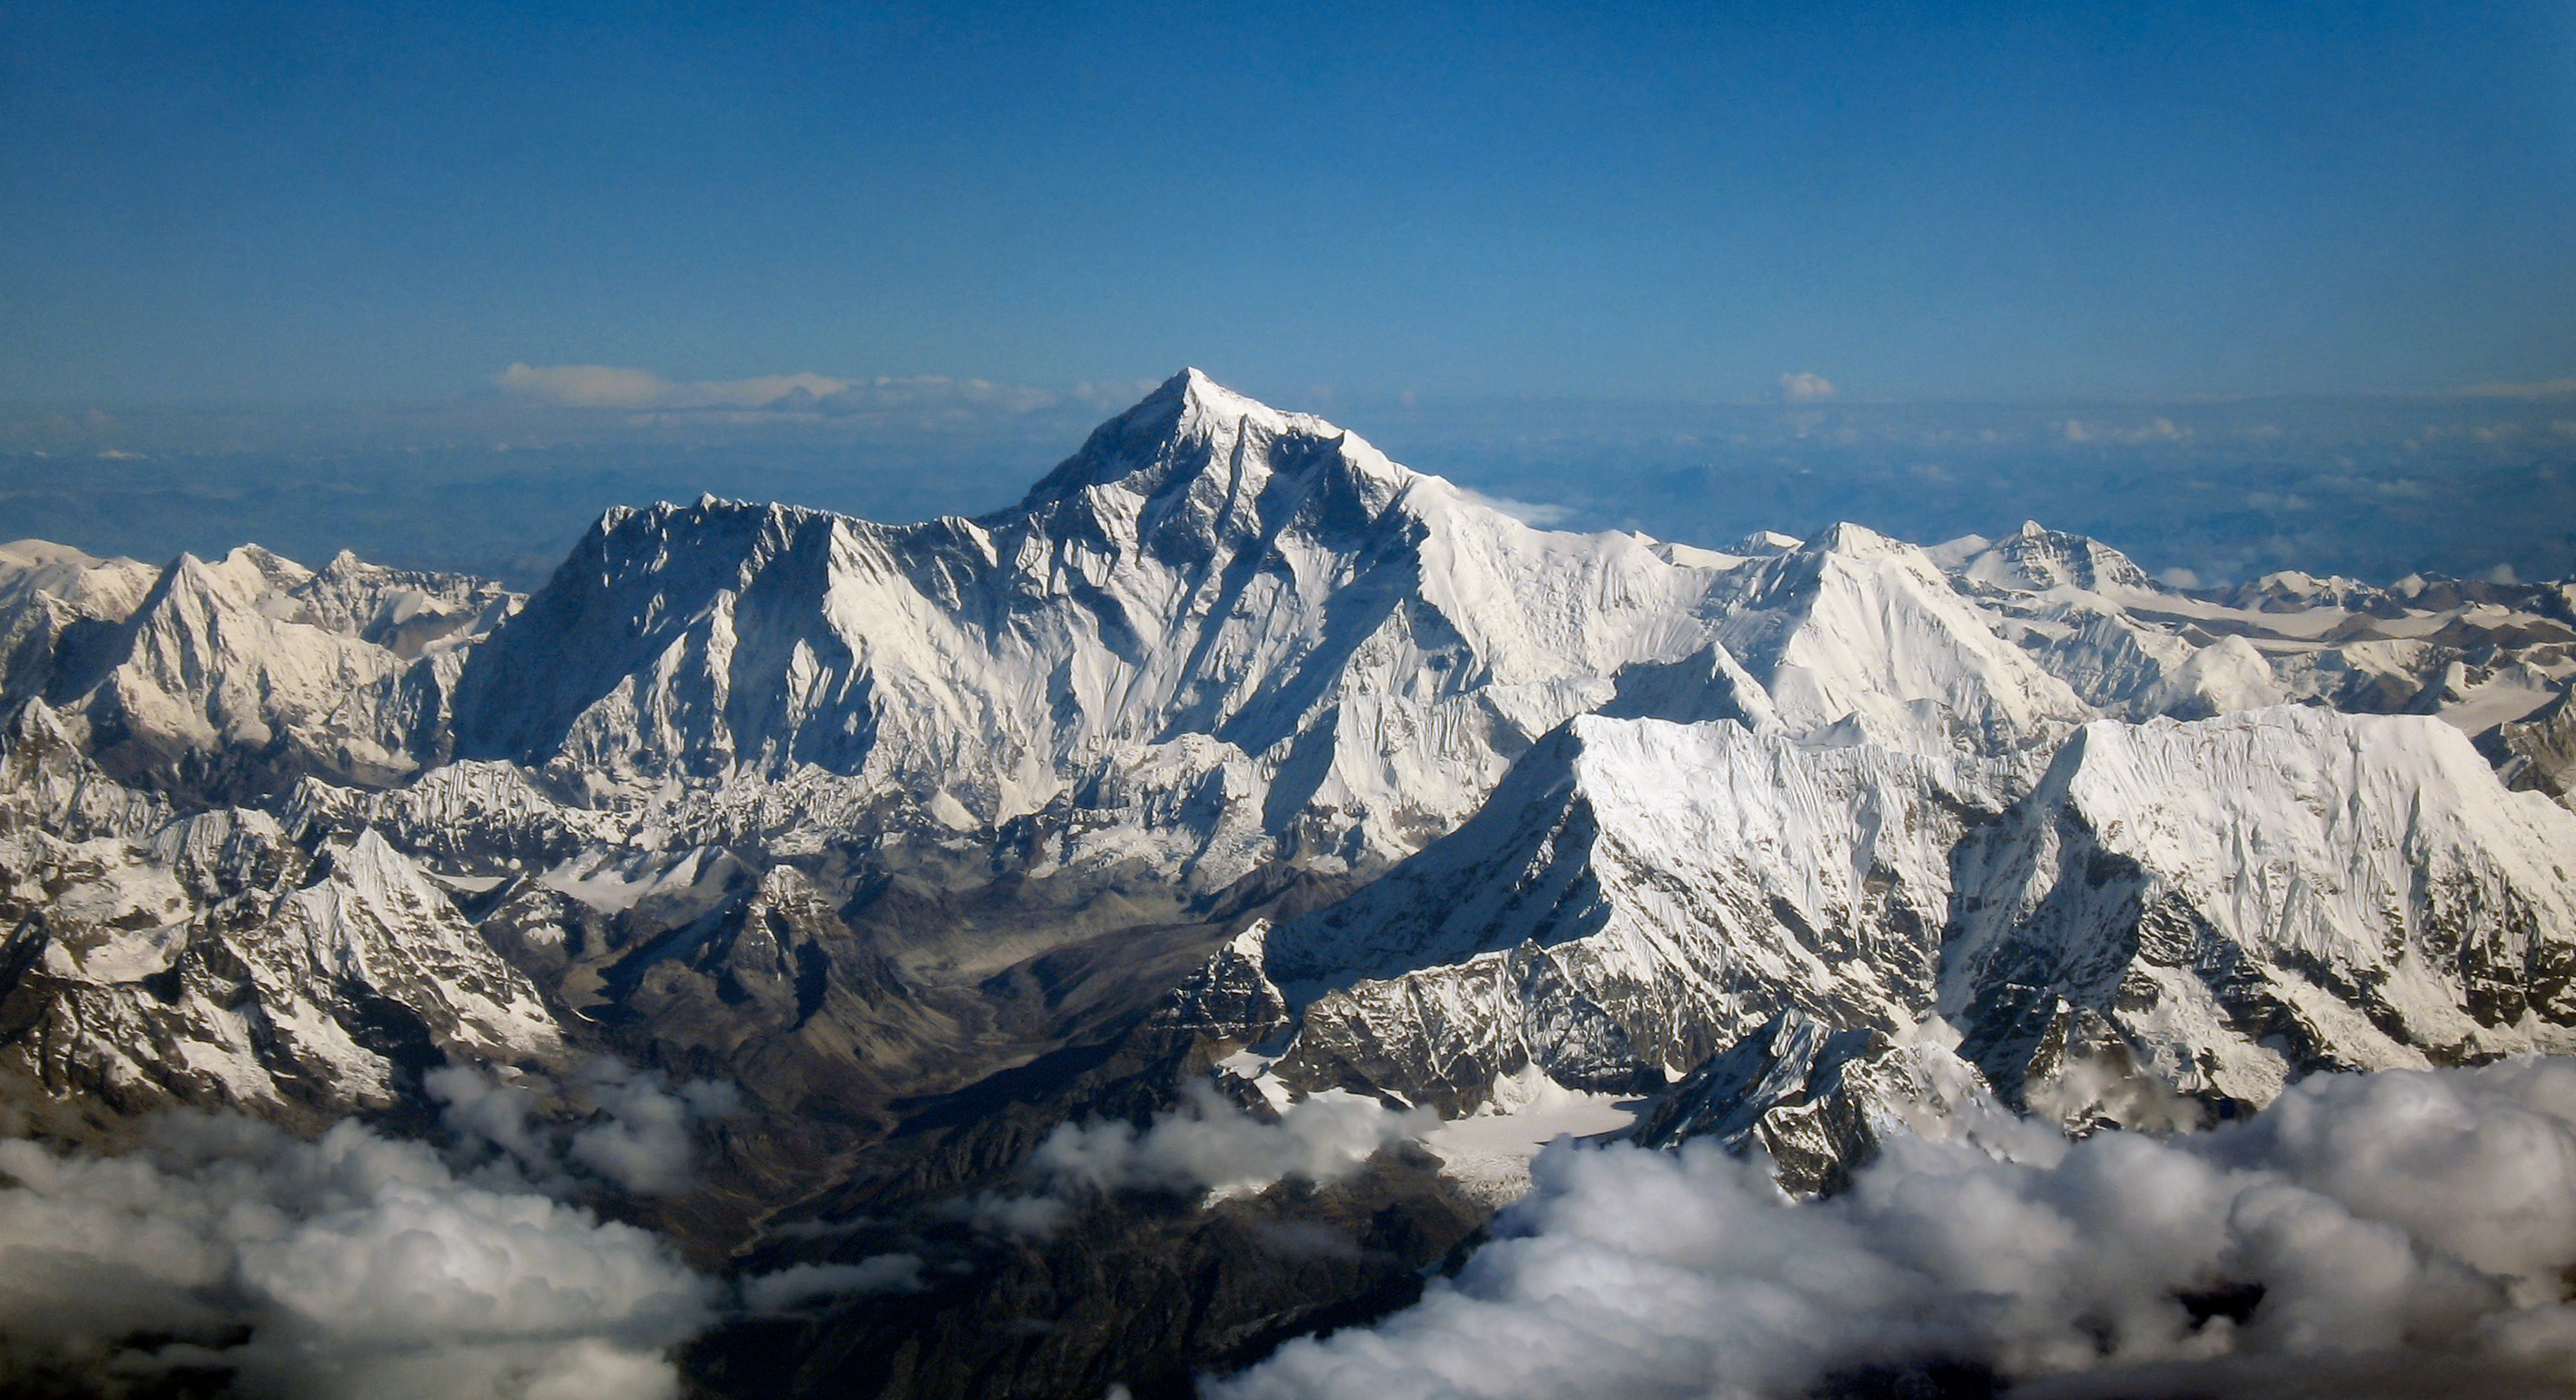 Foto van de Mount Everest